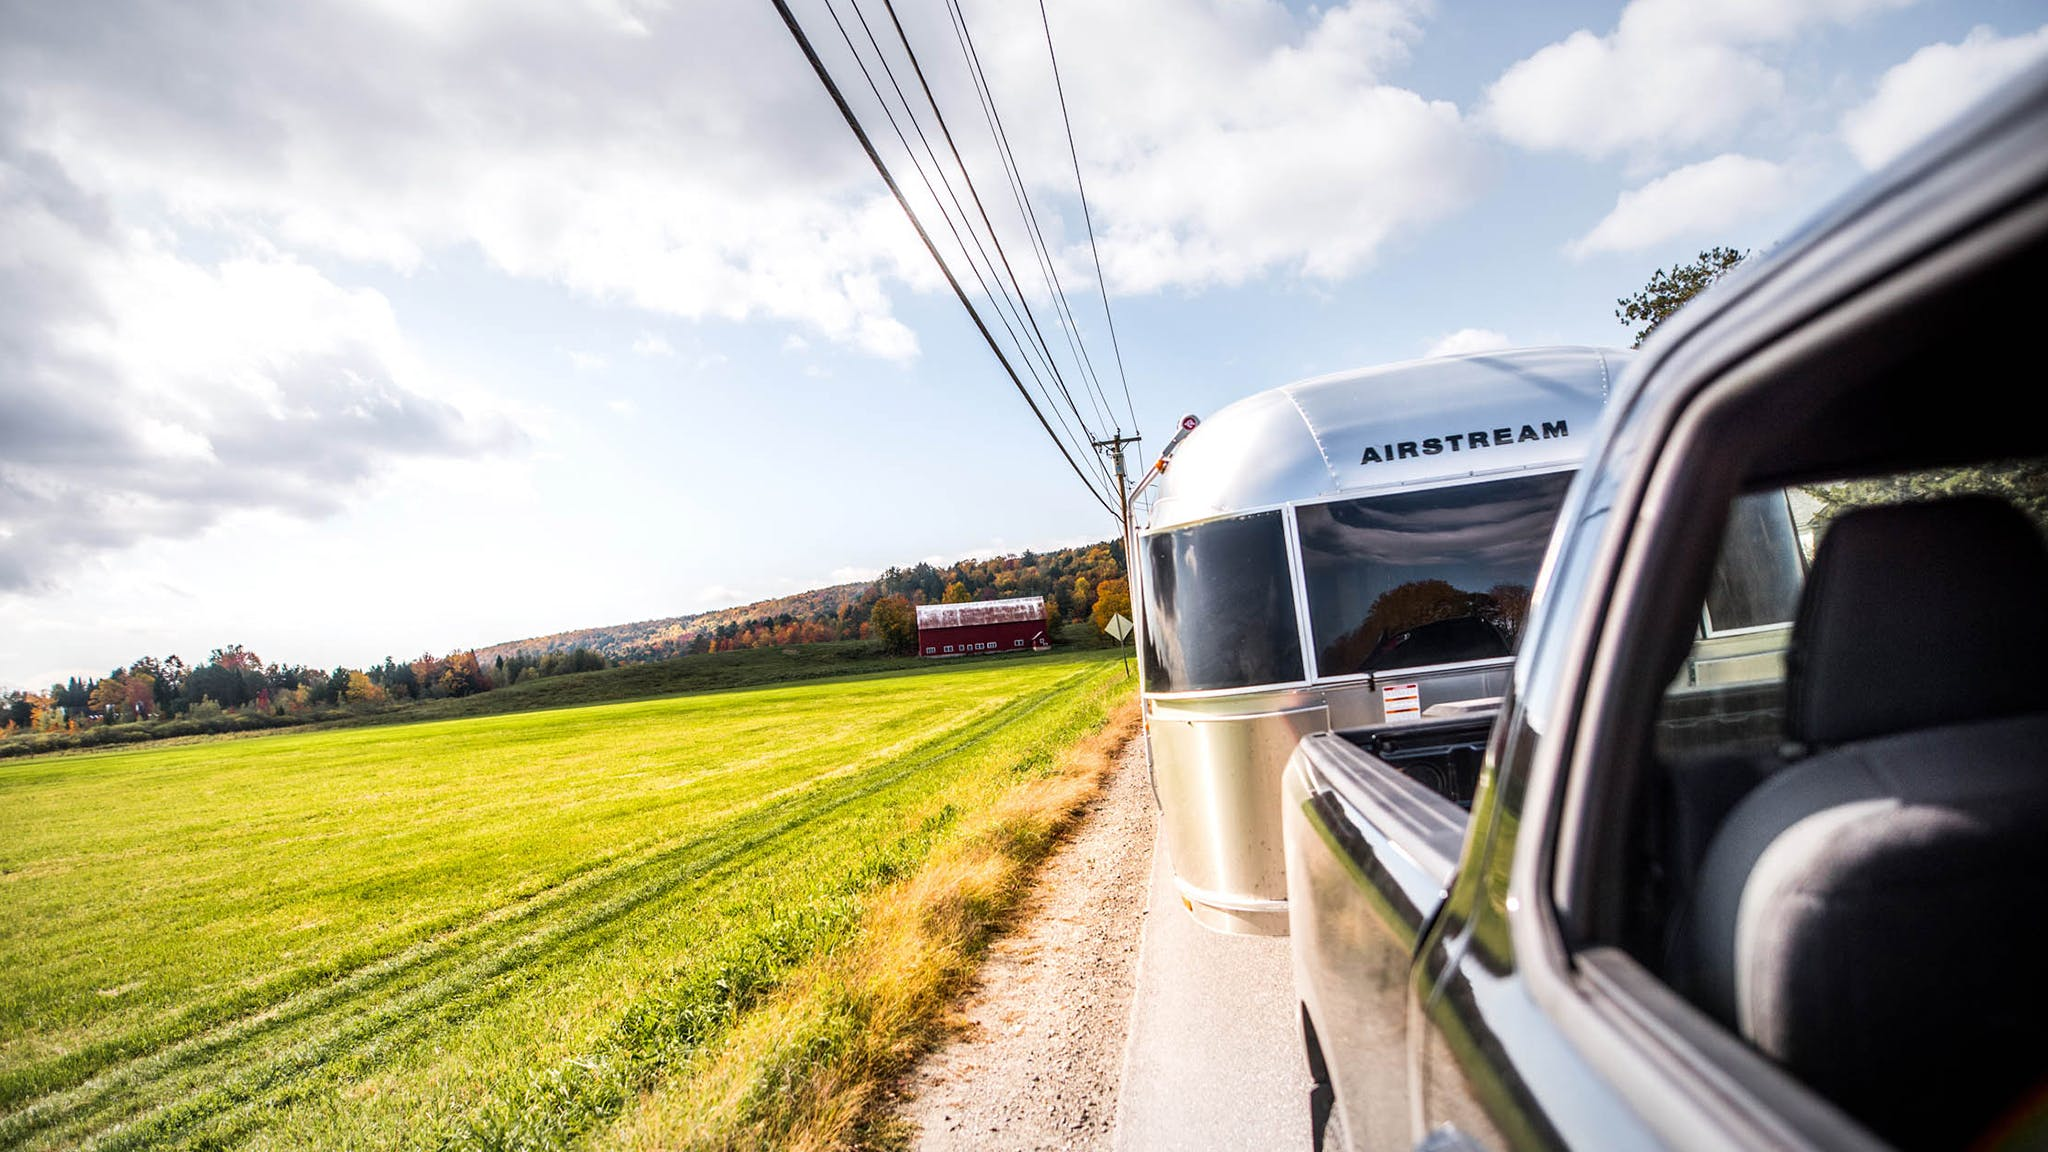 Airstream-Travel-Trailer-Anticipation-Matters-blog-desktop-feature